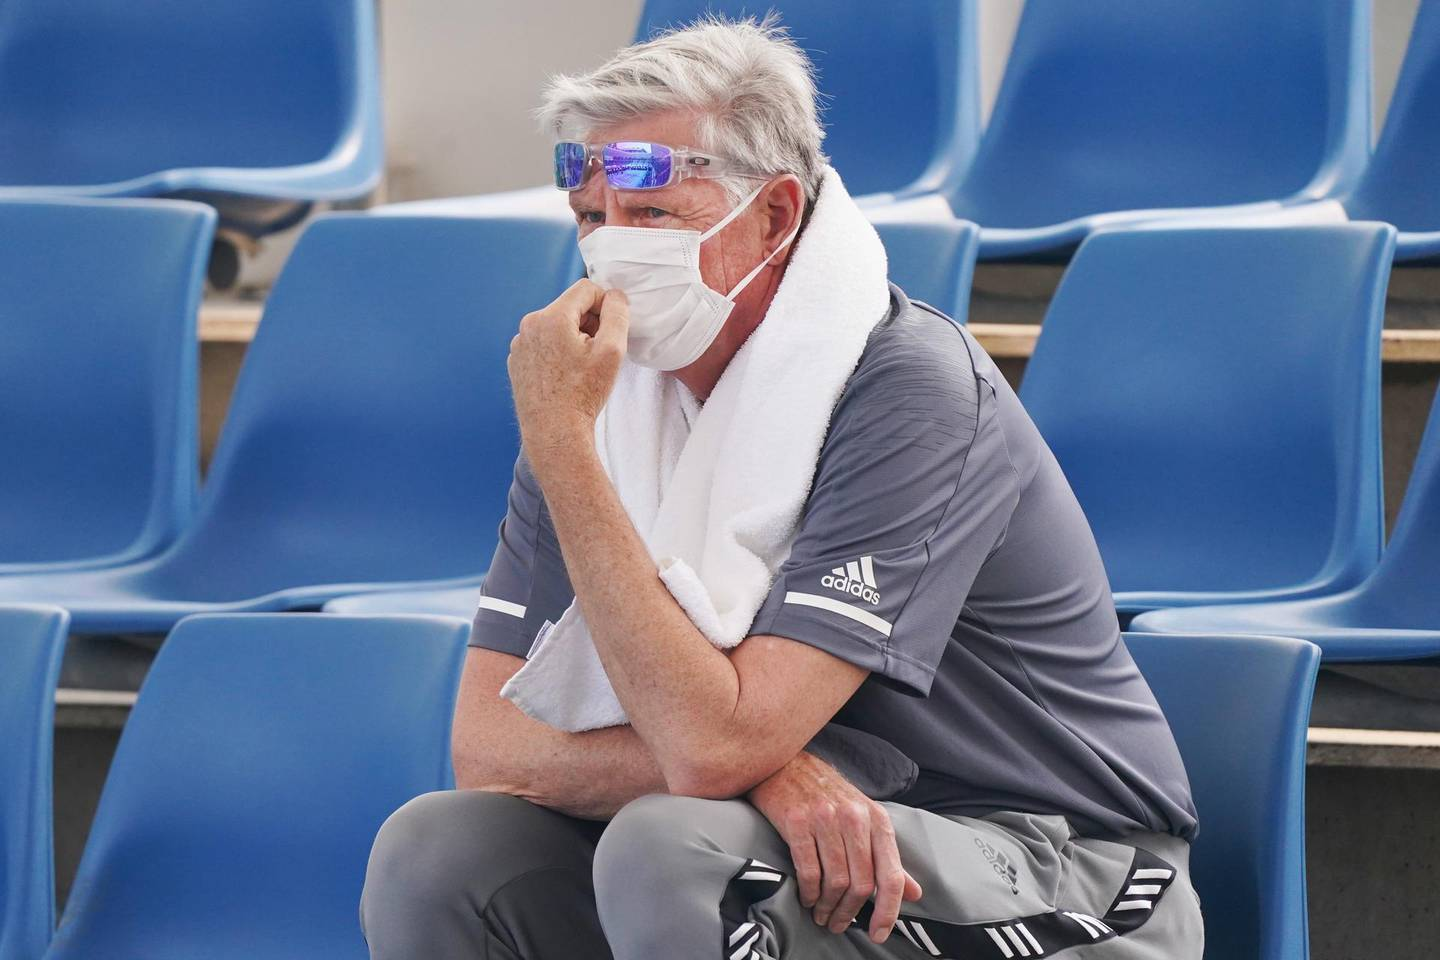 epa08126191 A spectator wears a mask due to poor air quality during qualifying at the Australian Open at Melbourne Park in Melbourne, Australia, 14 January 2020.  EPA/MICHAEL DODGE EDITORIAL USE ONLY AUSTRALIA AND NEW ZEALAND OUT